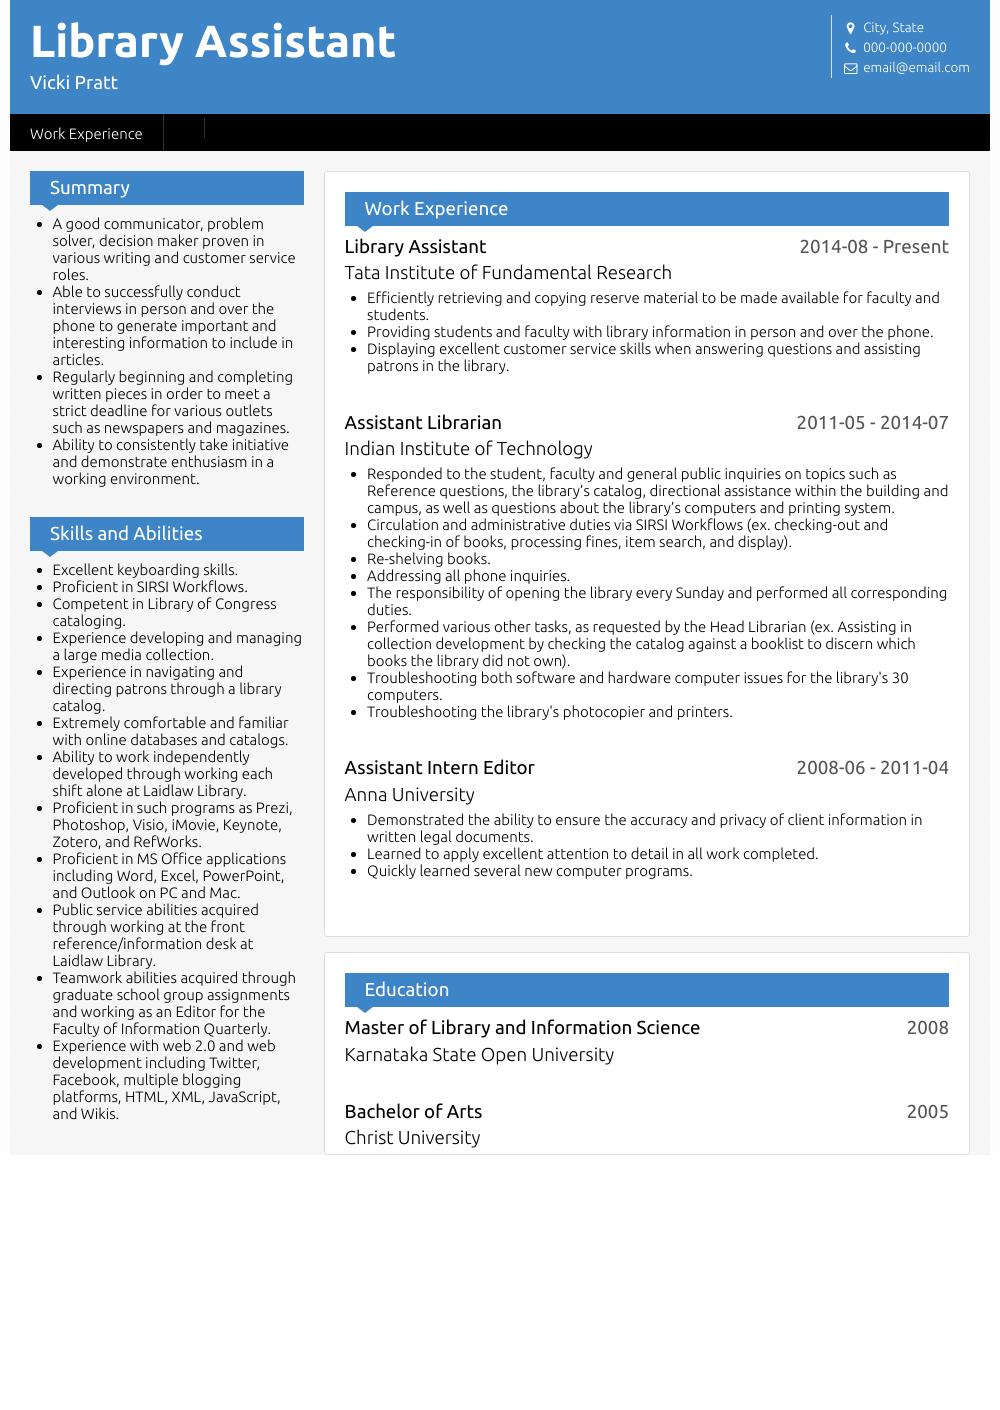 Library Assistant Resume Sample and Template